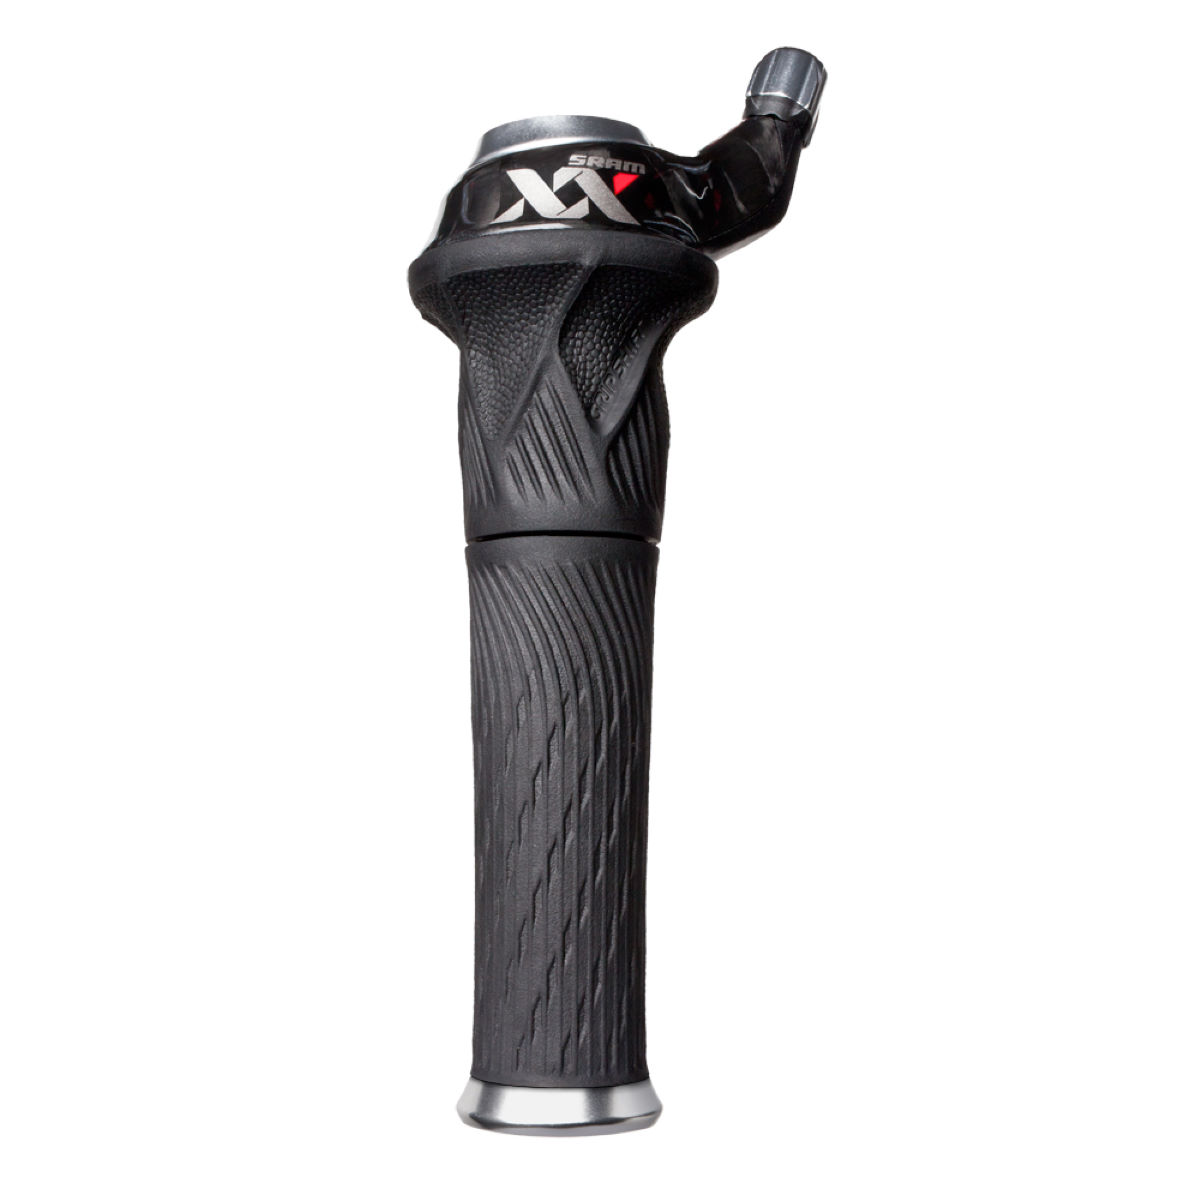 SRAM SRAM XX 10-Speed Rear Grip Shift With Lock-On Grip   Gear Levers